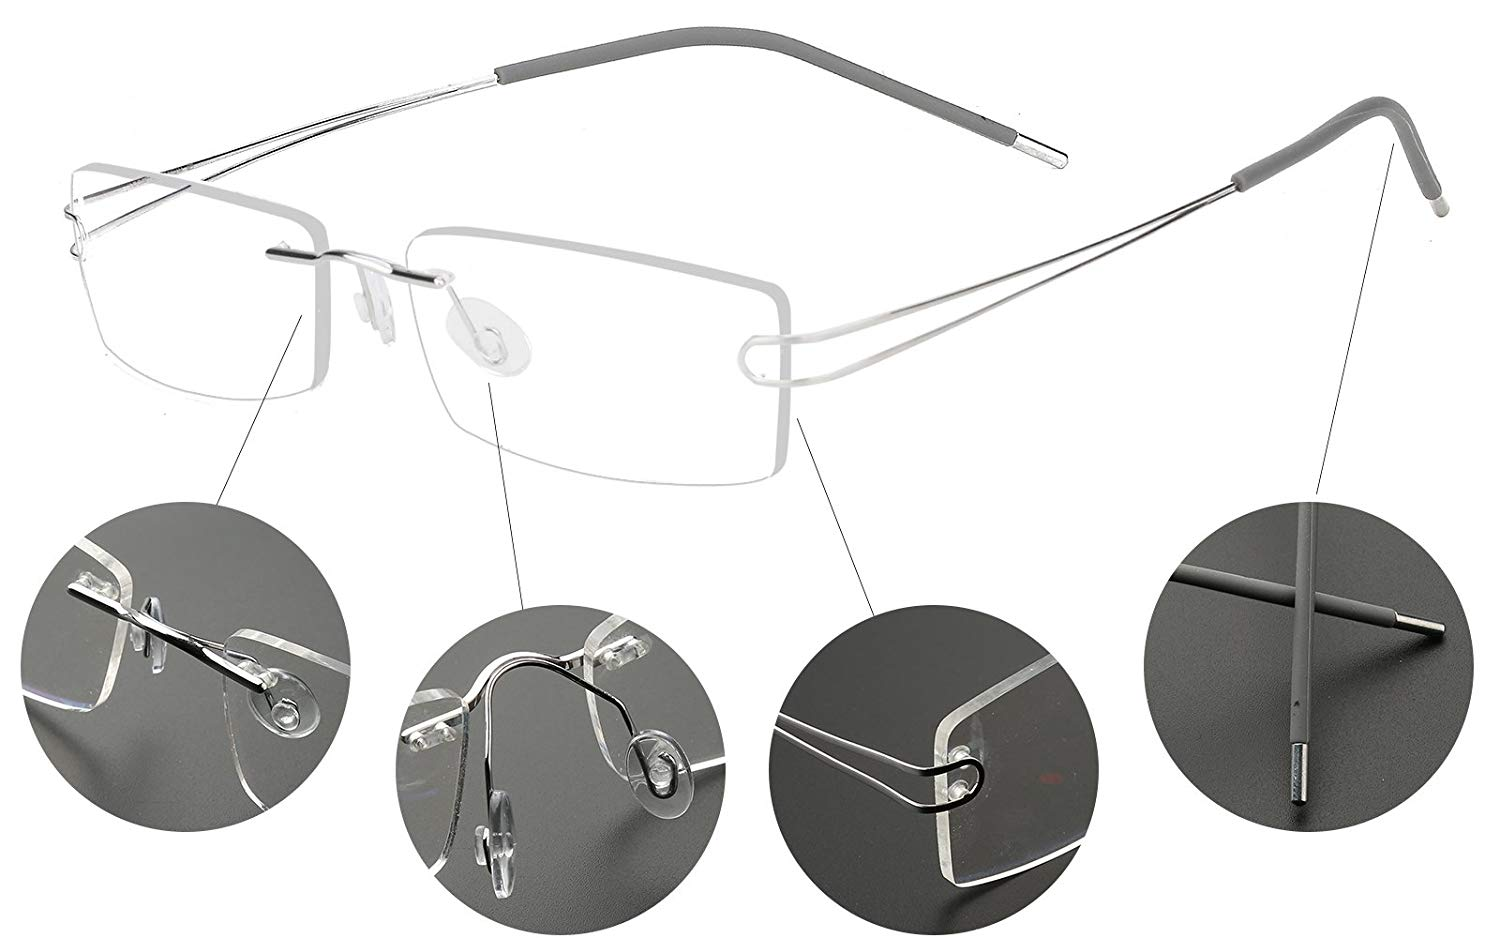 c72f222b810 ... Flexible Hinged Eyeglass Frame Eyewear Spectacles RX. Get Quotations ·  Agstum Pure Titanium Rimless Frame Prescription Hingeless Eyeglasses 52mm